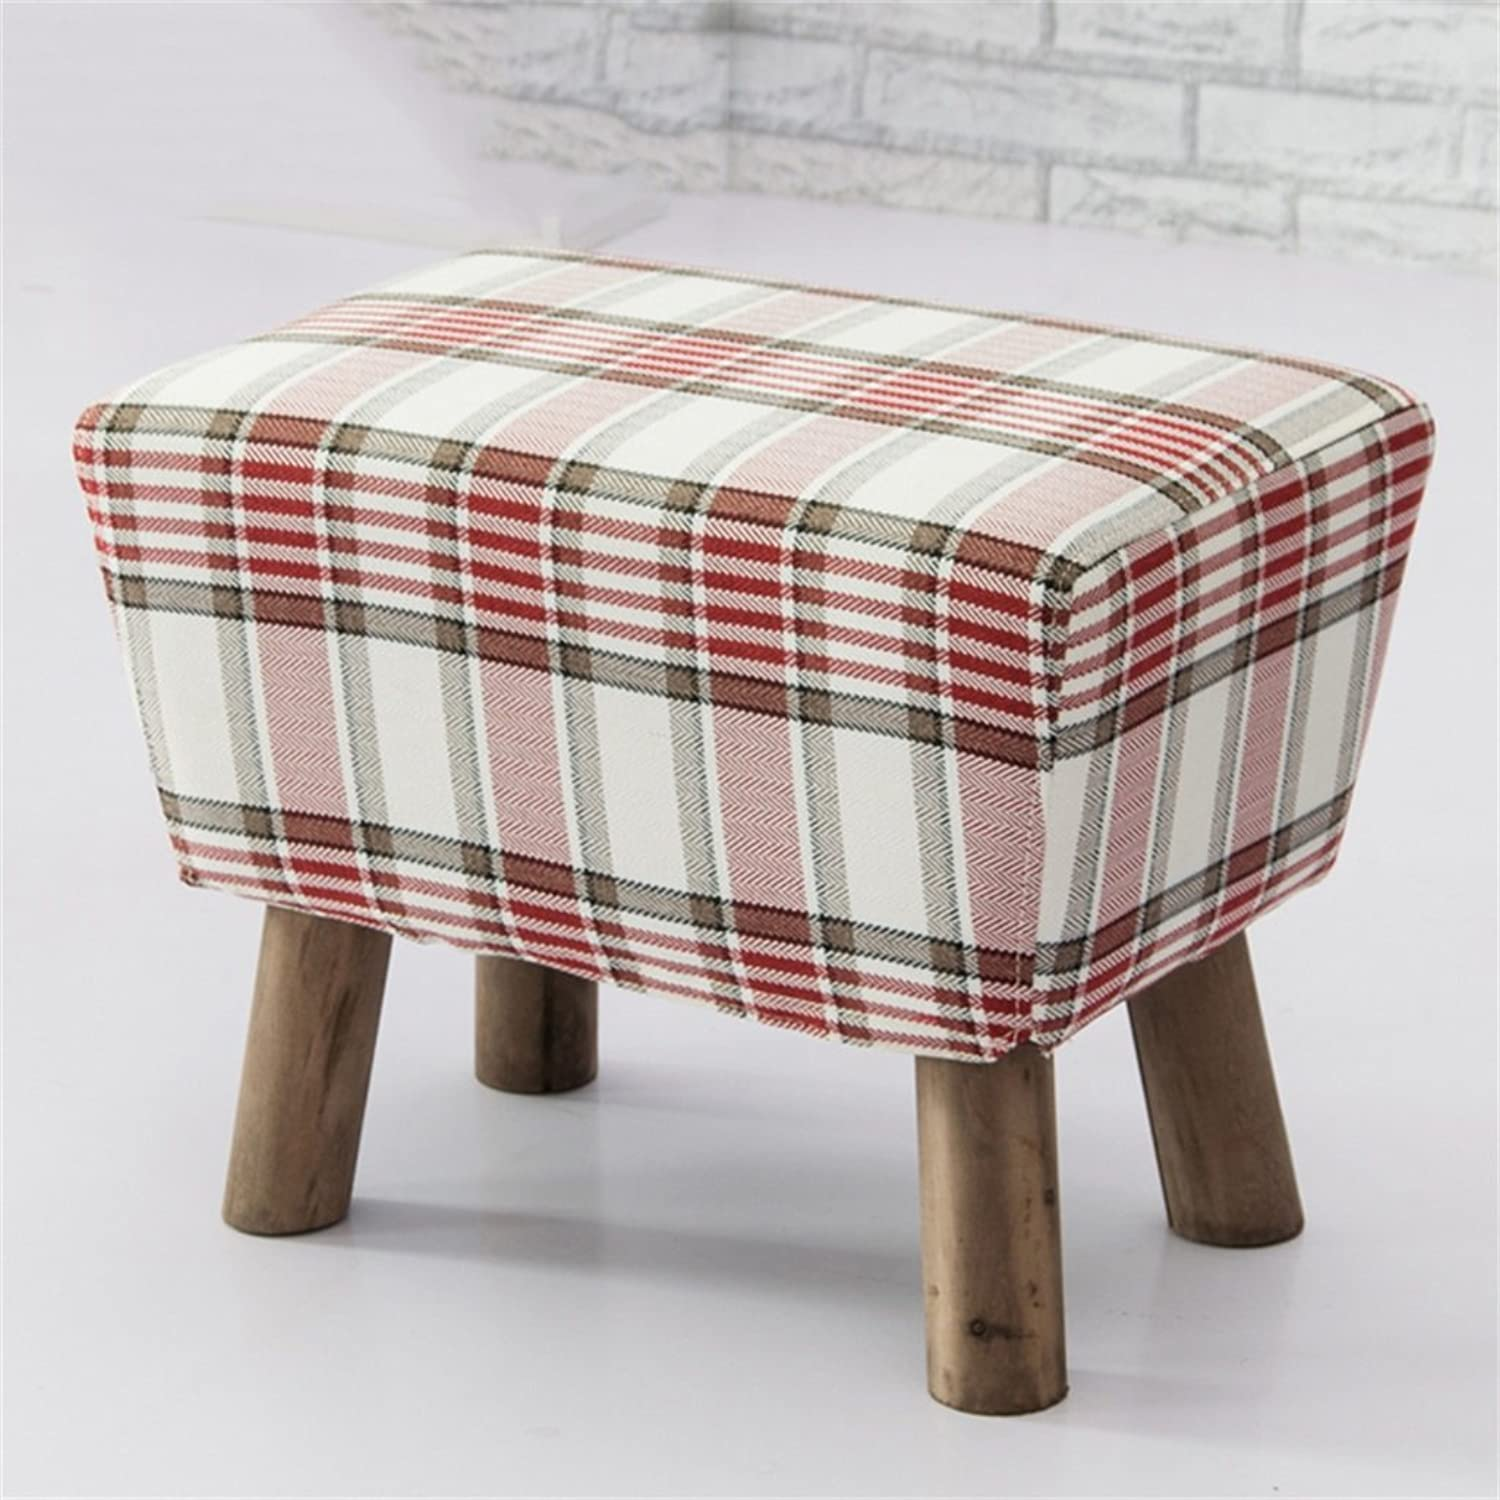 ZHBWJSH shoes Bench - Fabric Sofa Bench, Low Stool, Stool, Fashion Footstool (color     14)